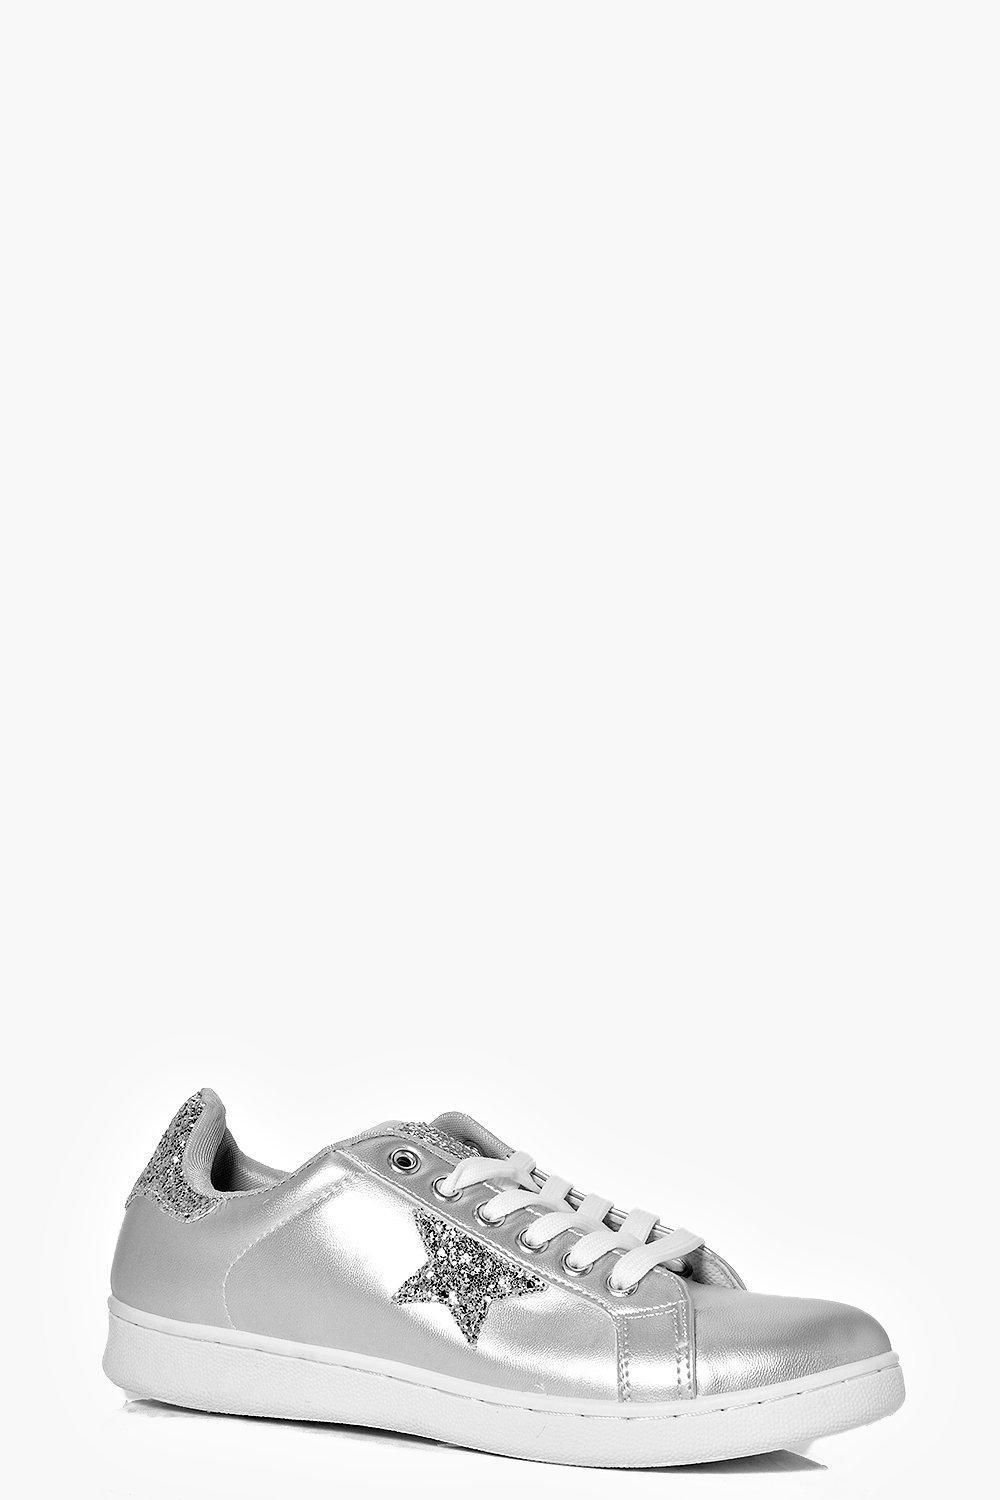 Star Detail Lace Up Trainer Silver - predominant colour: silver; occasions: casual; material: leather; heel height: flat; toe: round toe; style: trainers; finish: metallic; pattern: plain; season: s/s 2016; wardrobe: basic